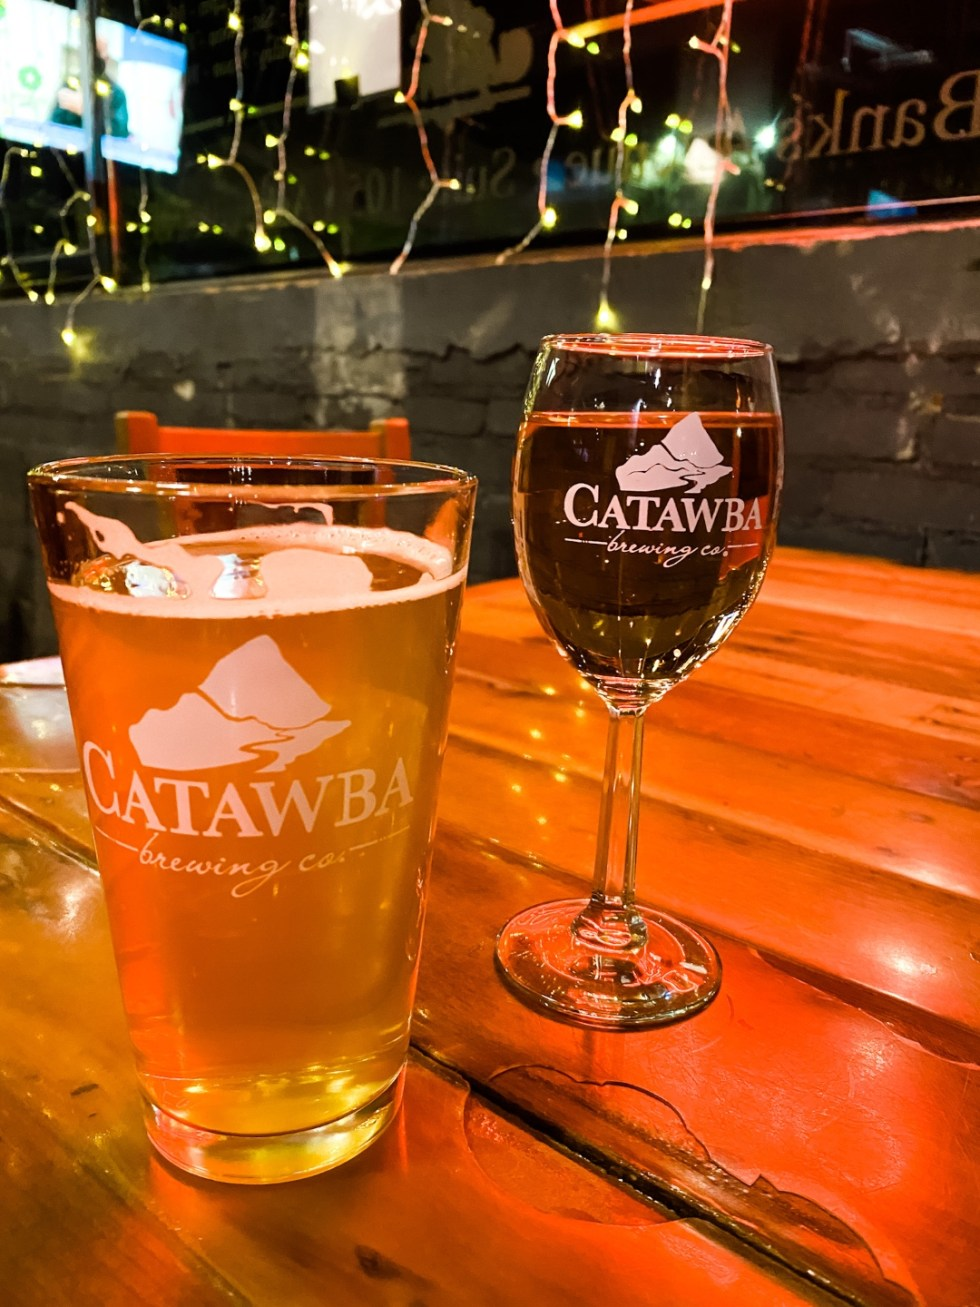 Christmas in Asheville: a Weekend Getaway During the Holidays - I'm Fixin' To - @imfixintoblog |Christmas in Asheville NC by popular NC lifestyle blog, I'm Fixin' To: image of a glass of beer and a glass of wine at Catabaw Brewing Company.